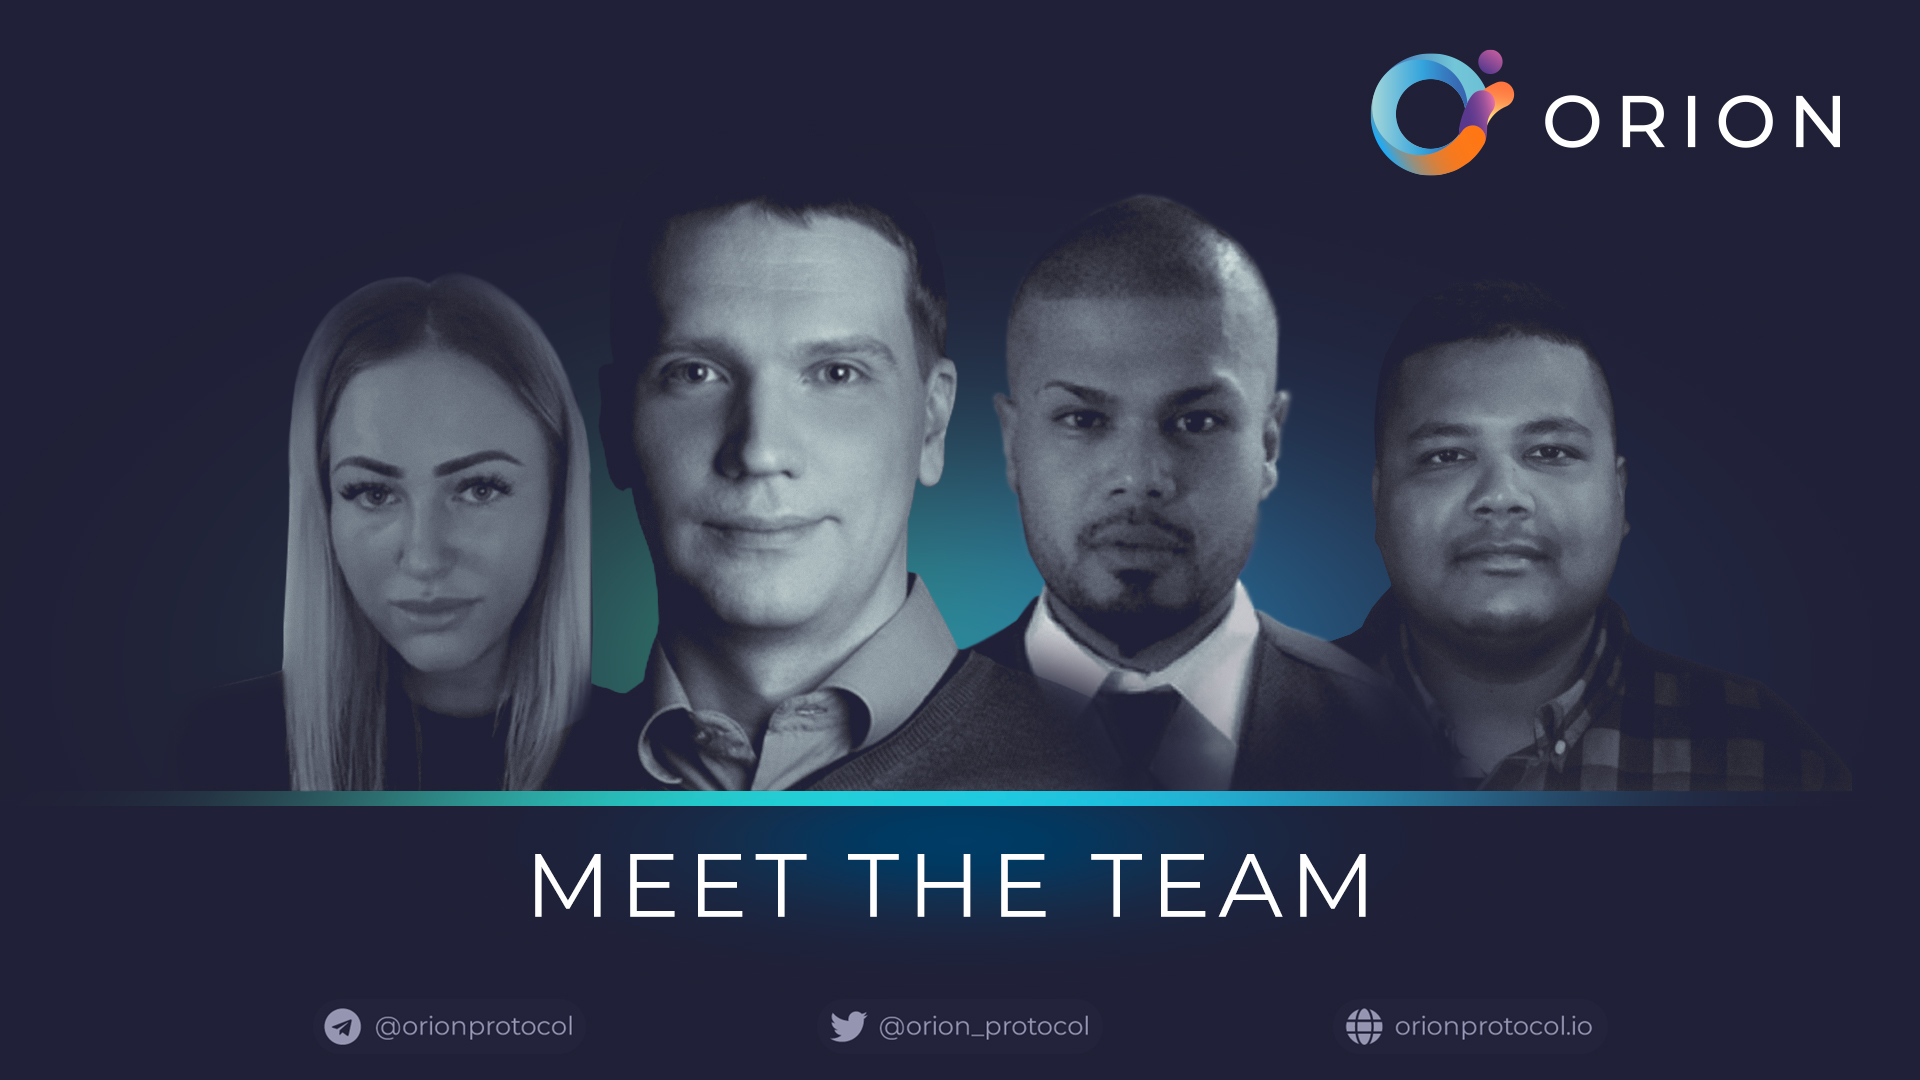 Meet the Team Building the Future of Finance